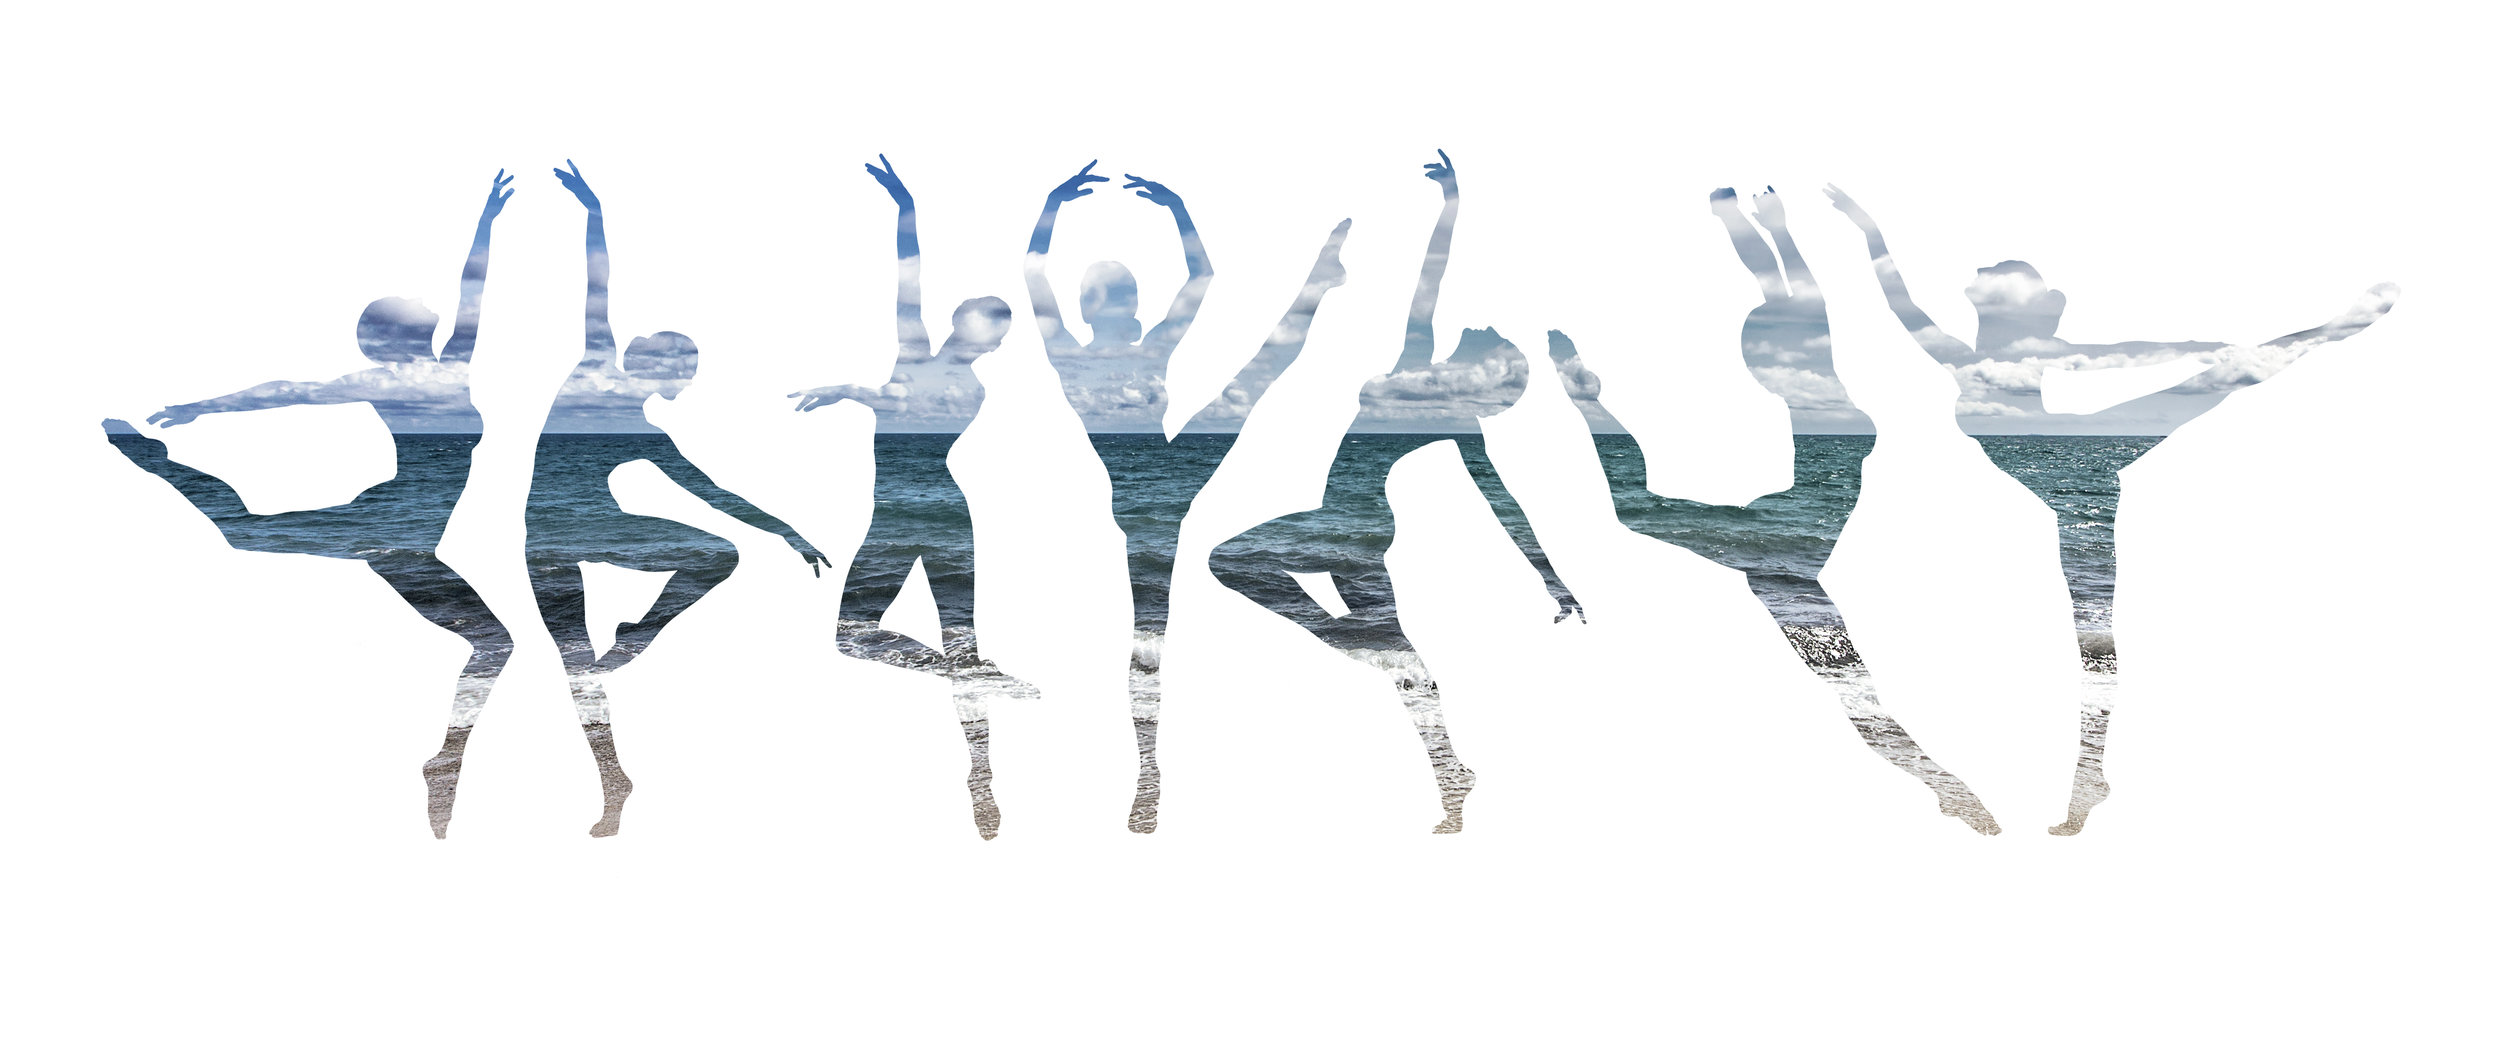 Double-exposure-of-ballet-dancers-silhouette-and-seascape-617755272_7998x3399.jpeg